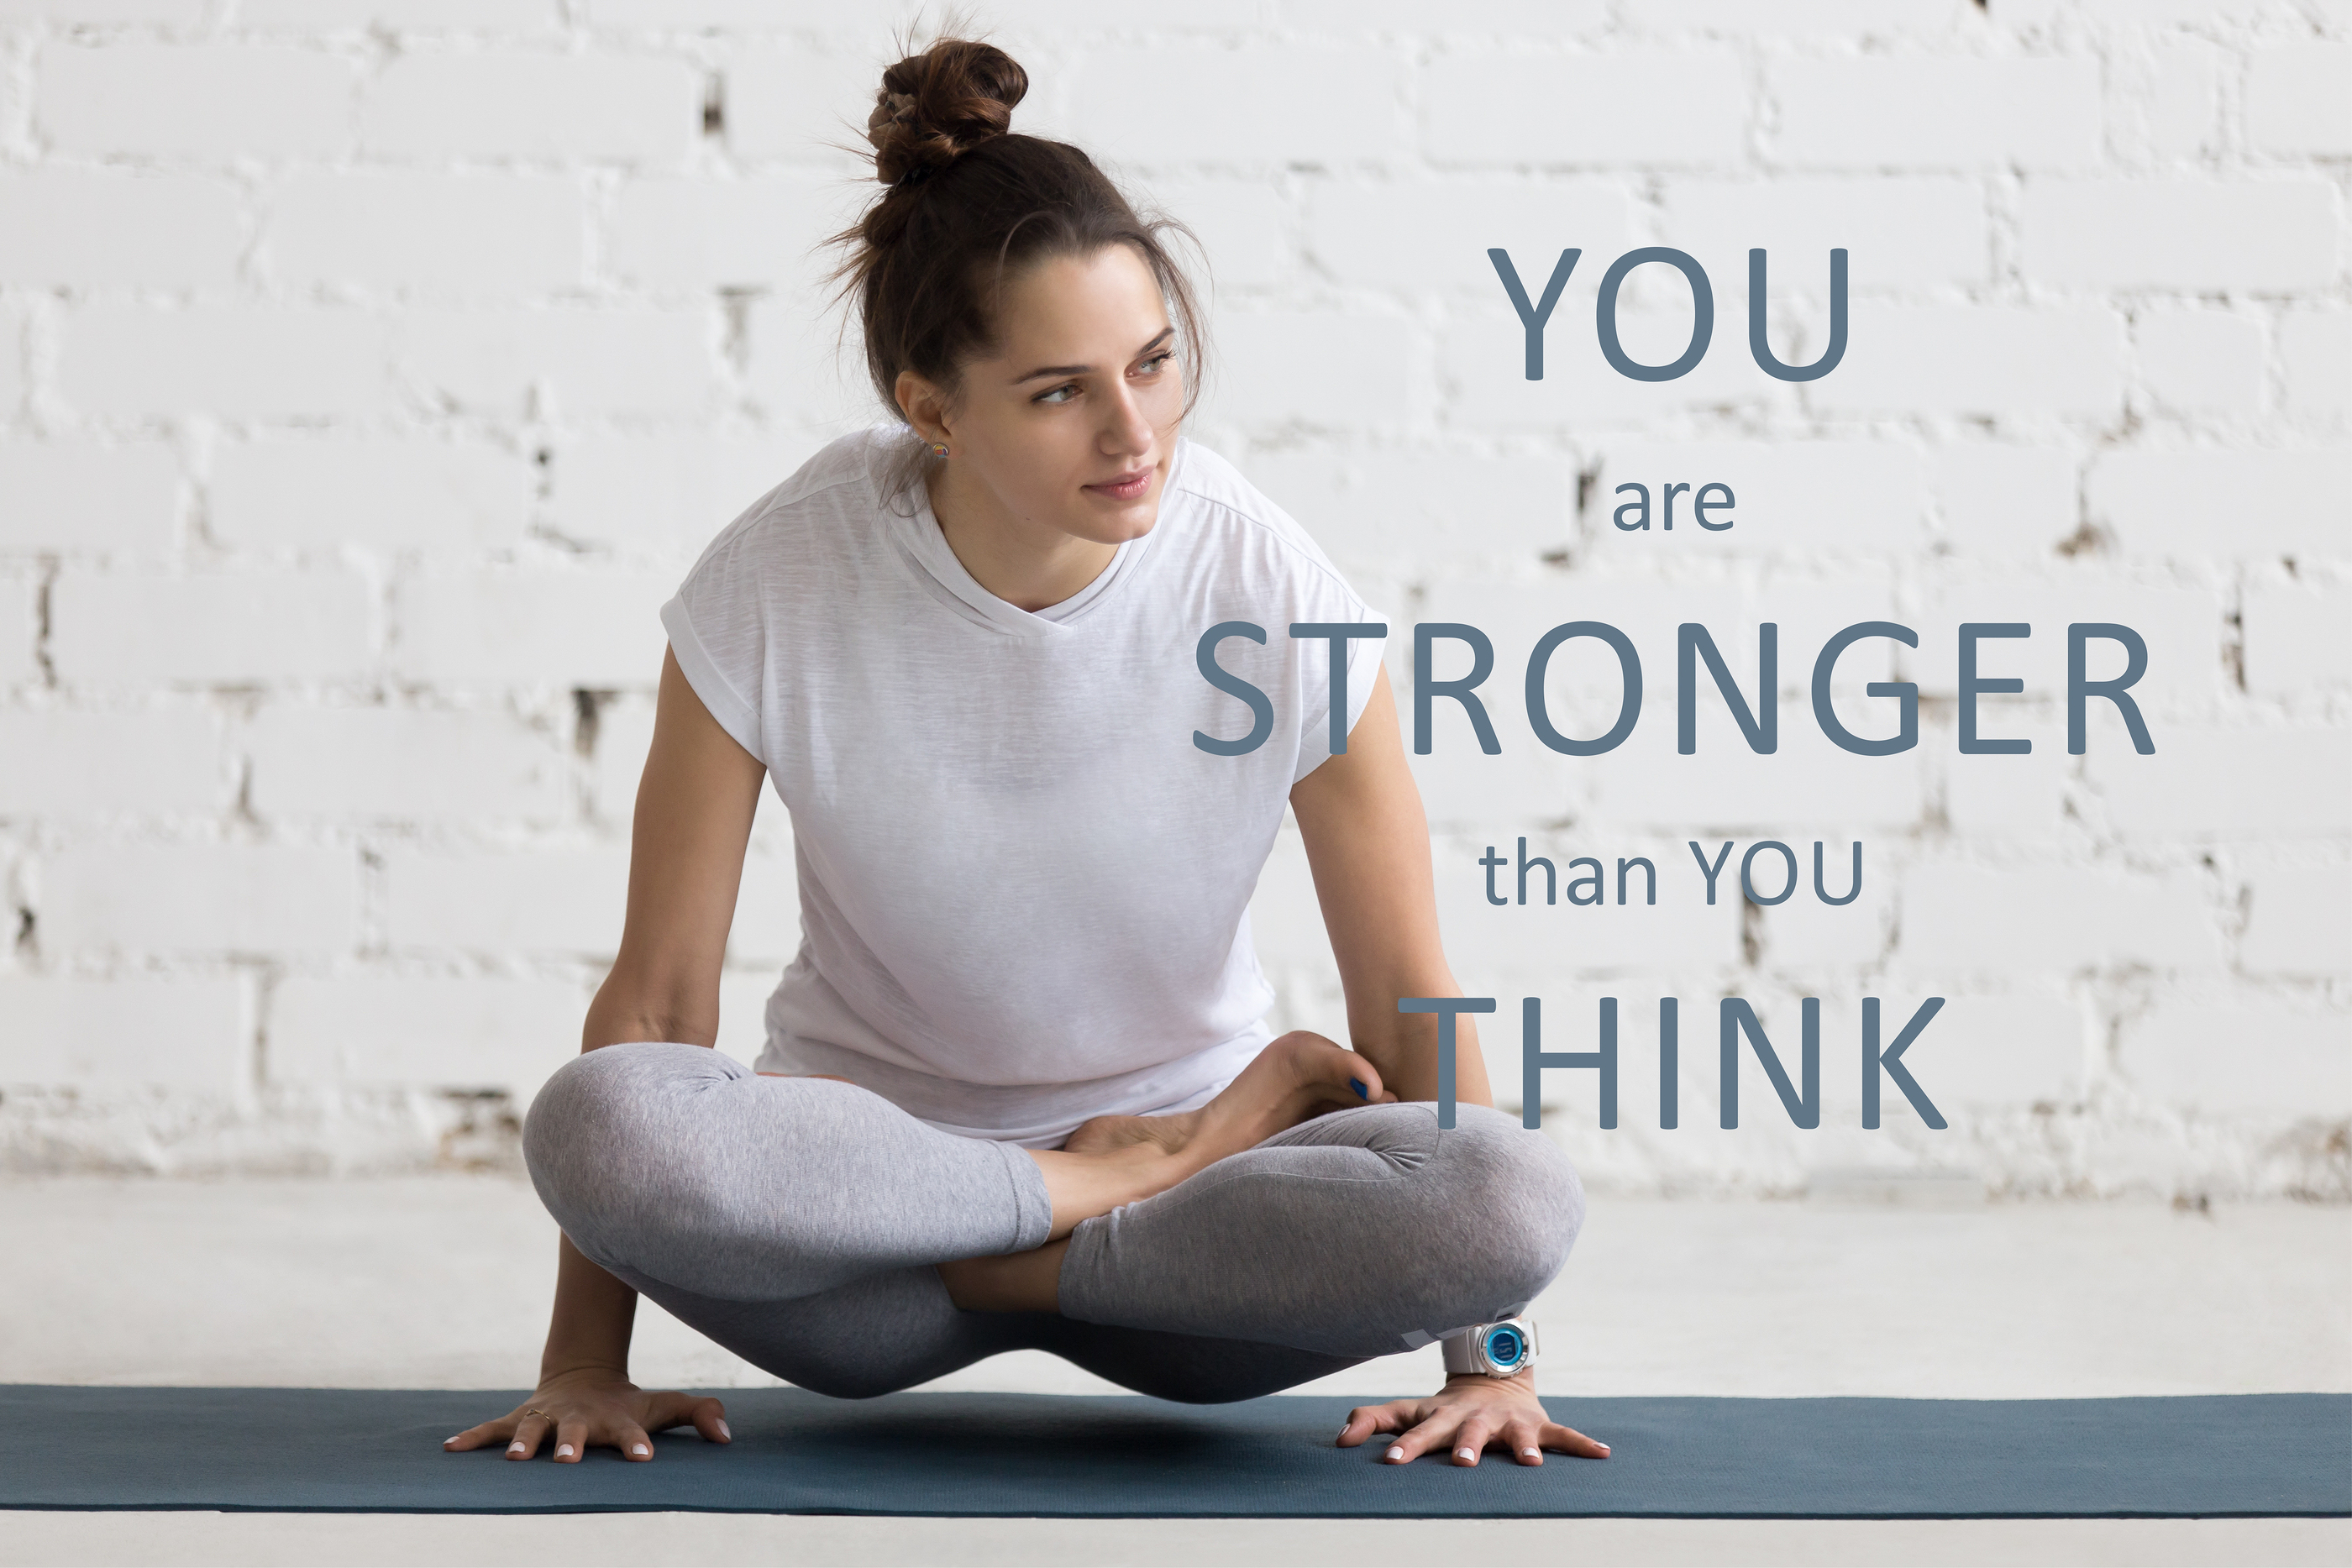 You Are Stronger Than You Think!